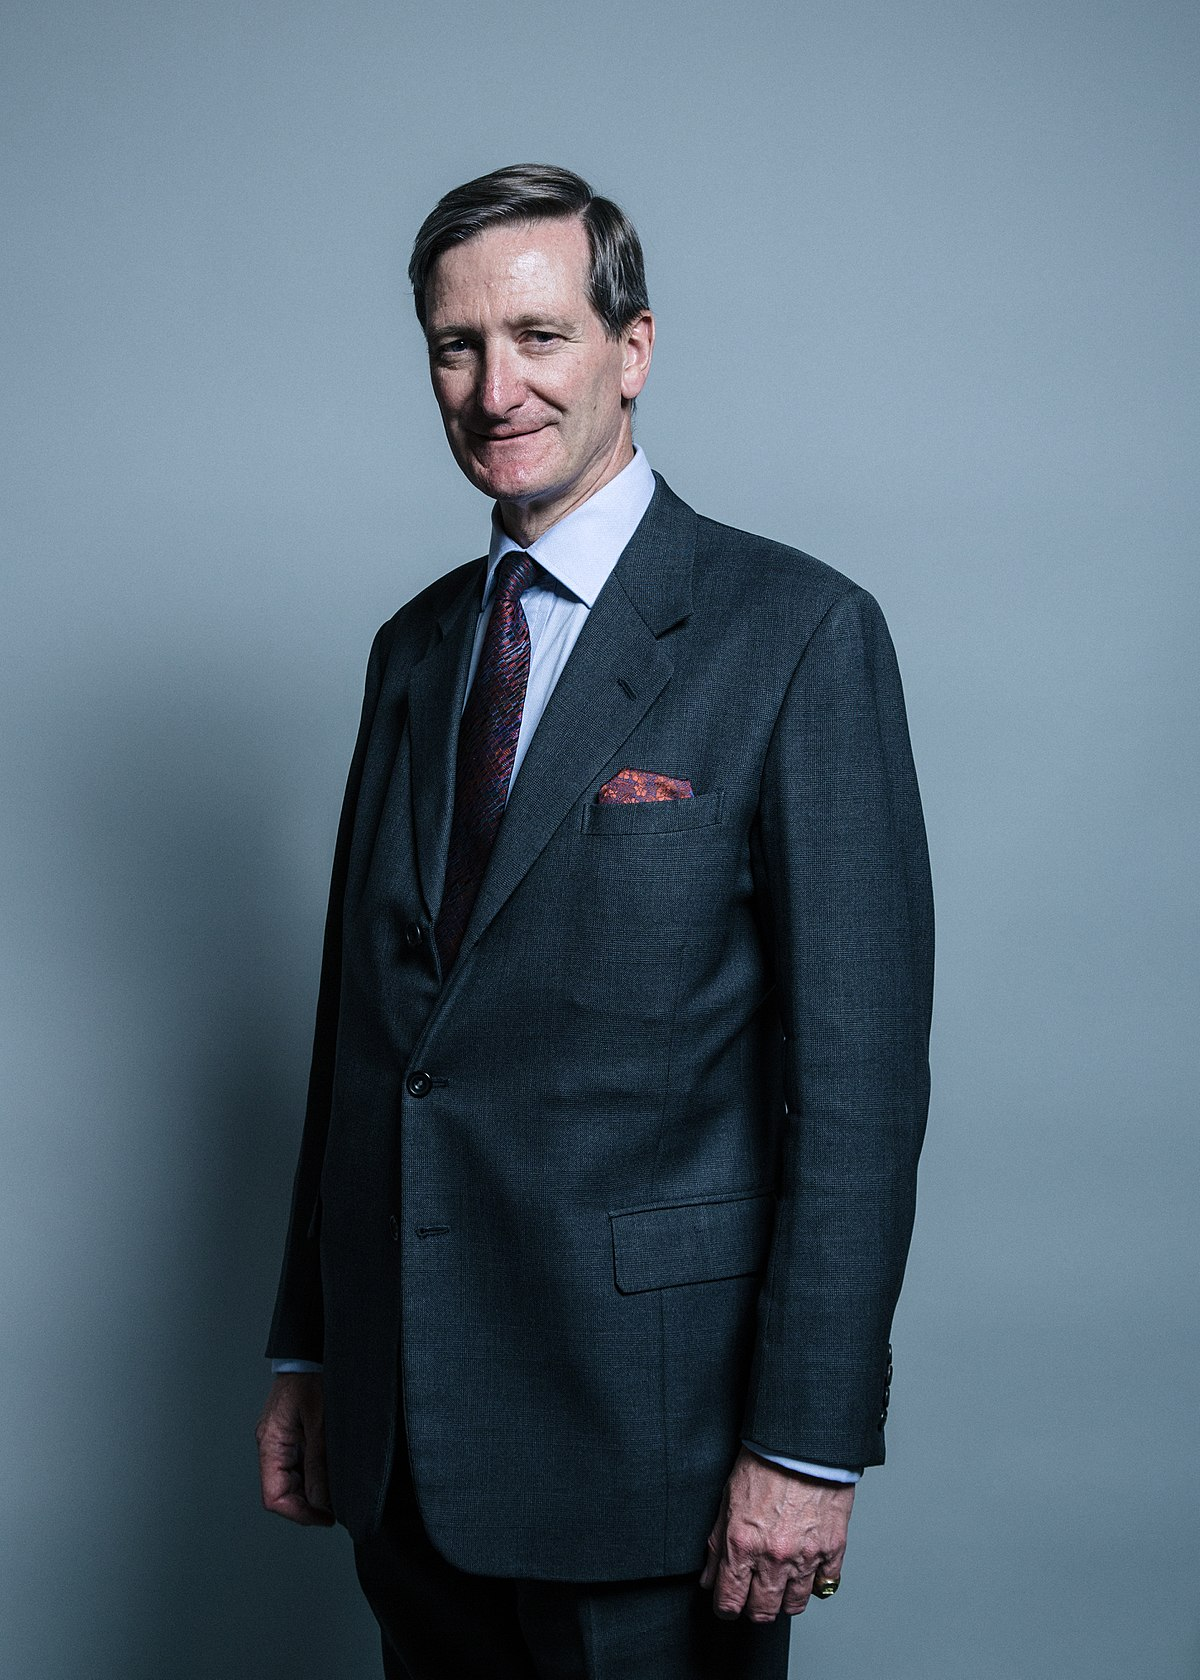 dominic grieve - photo #2